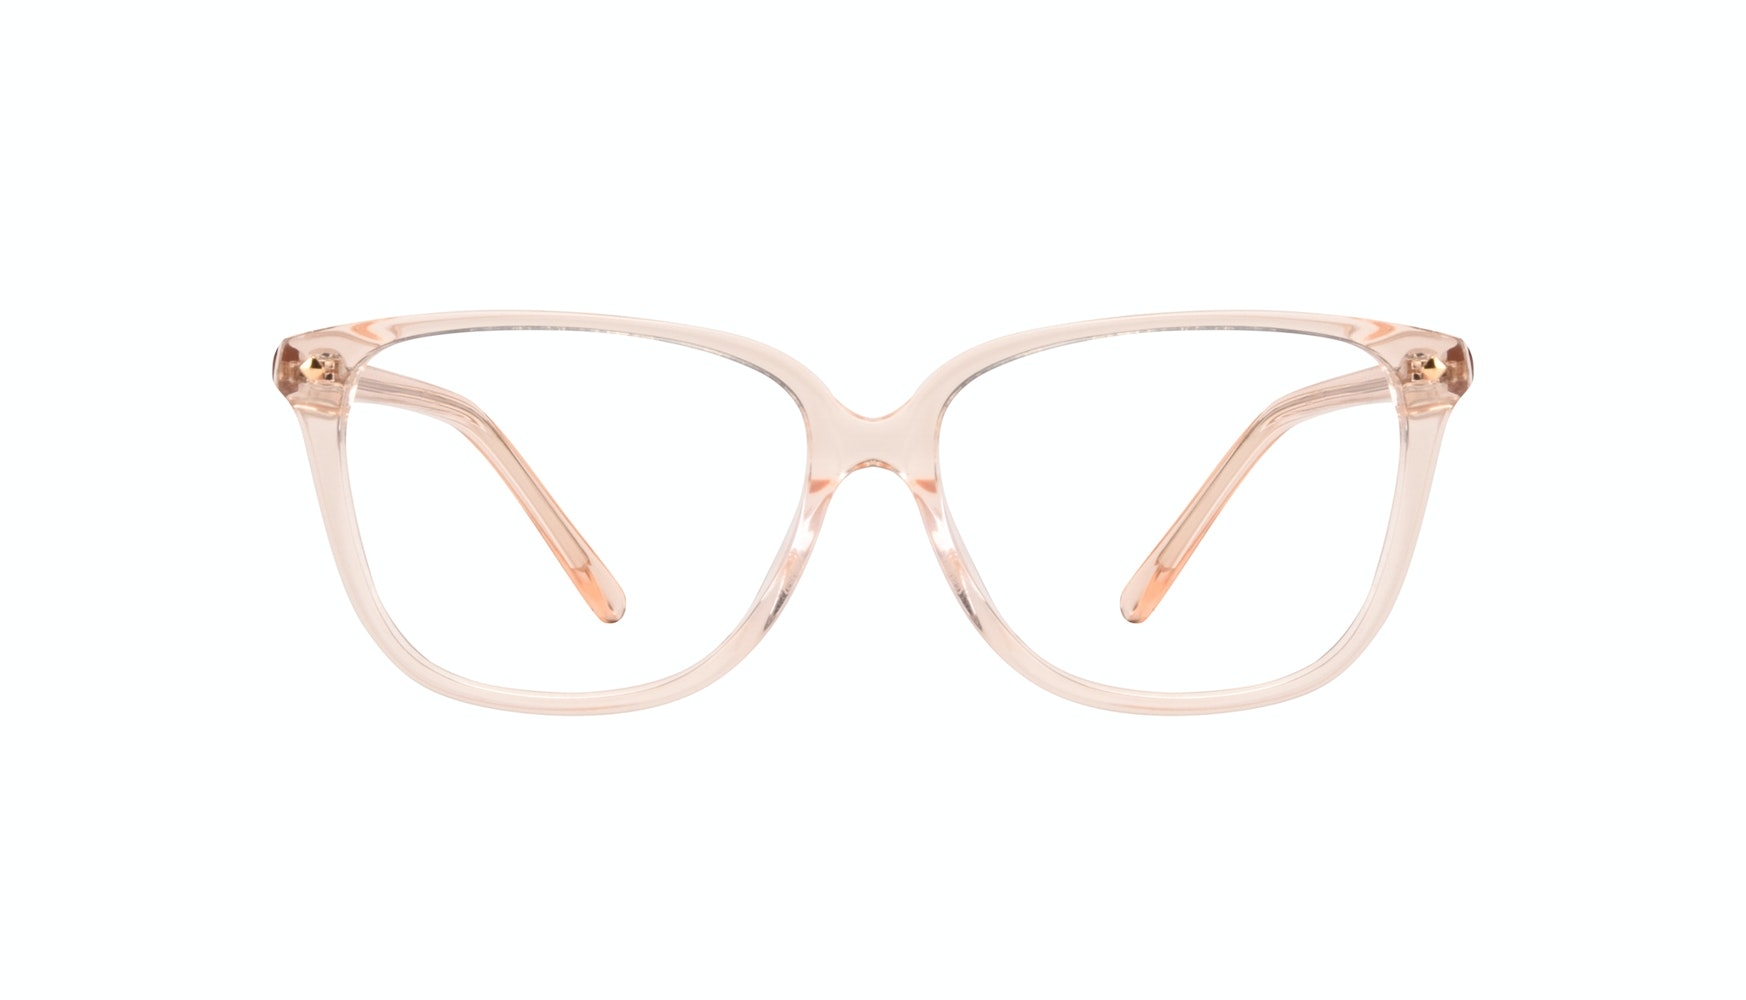 Affordable Fashion Glasses Rectangle Square Eyeglasses Women Muse Blond Front